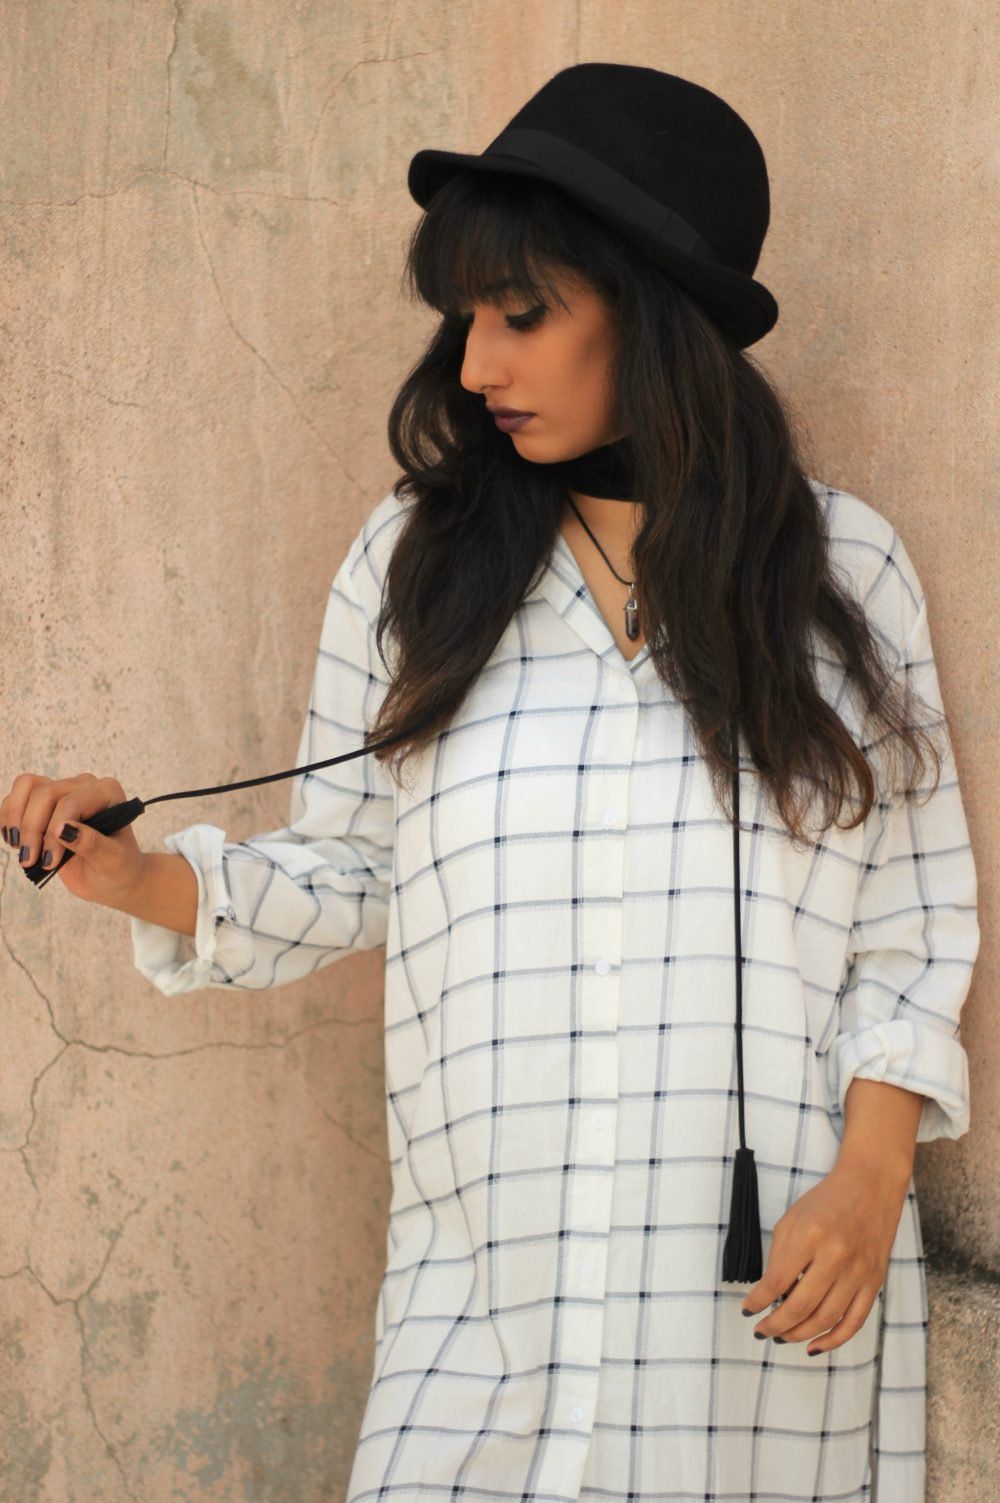 Naznin Suhaer ; I Dress for the Applause ; Hyderabad fashion bloggers ; Hyderabad fashion blogger ; Zaful ; Shirt Dress ; Checks ; Choker ; 70s fashion ; streetstyle ; street fashion ; Lookbook ; Hat ; wine lips ; winged eyes ; new look ; Winter fashion ; Vintage ; Dark ; Fashion Photography ;